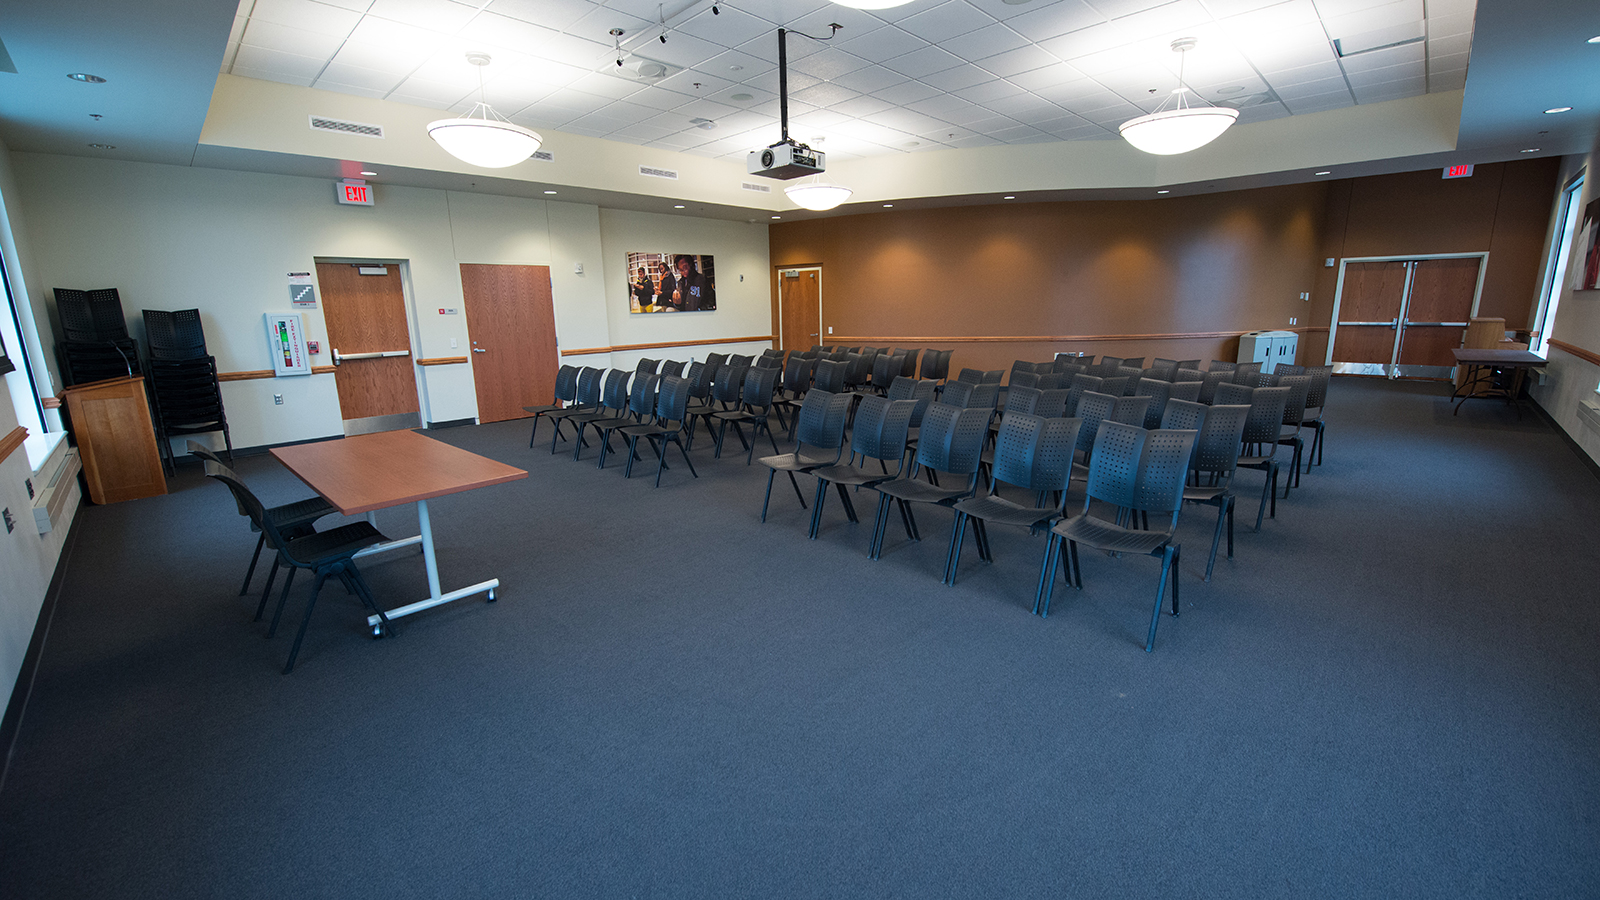 Meeting room in Gaughan Center filled with chairs and projector.